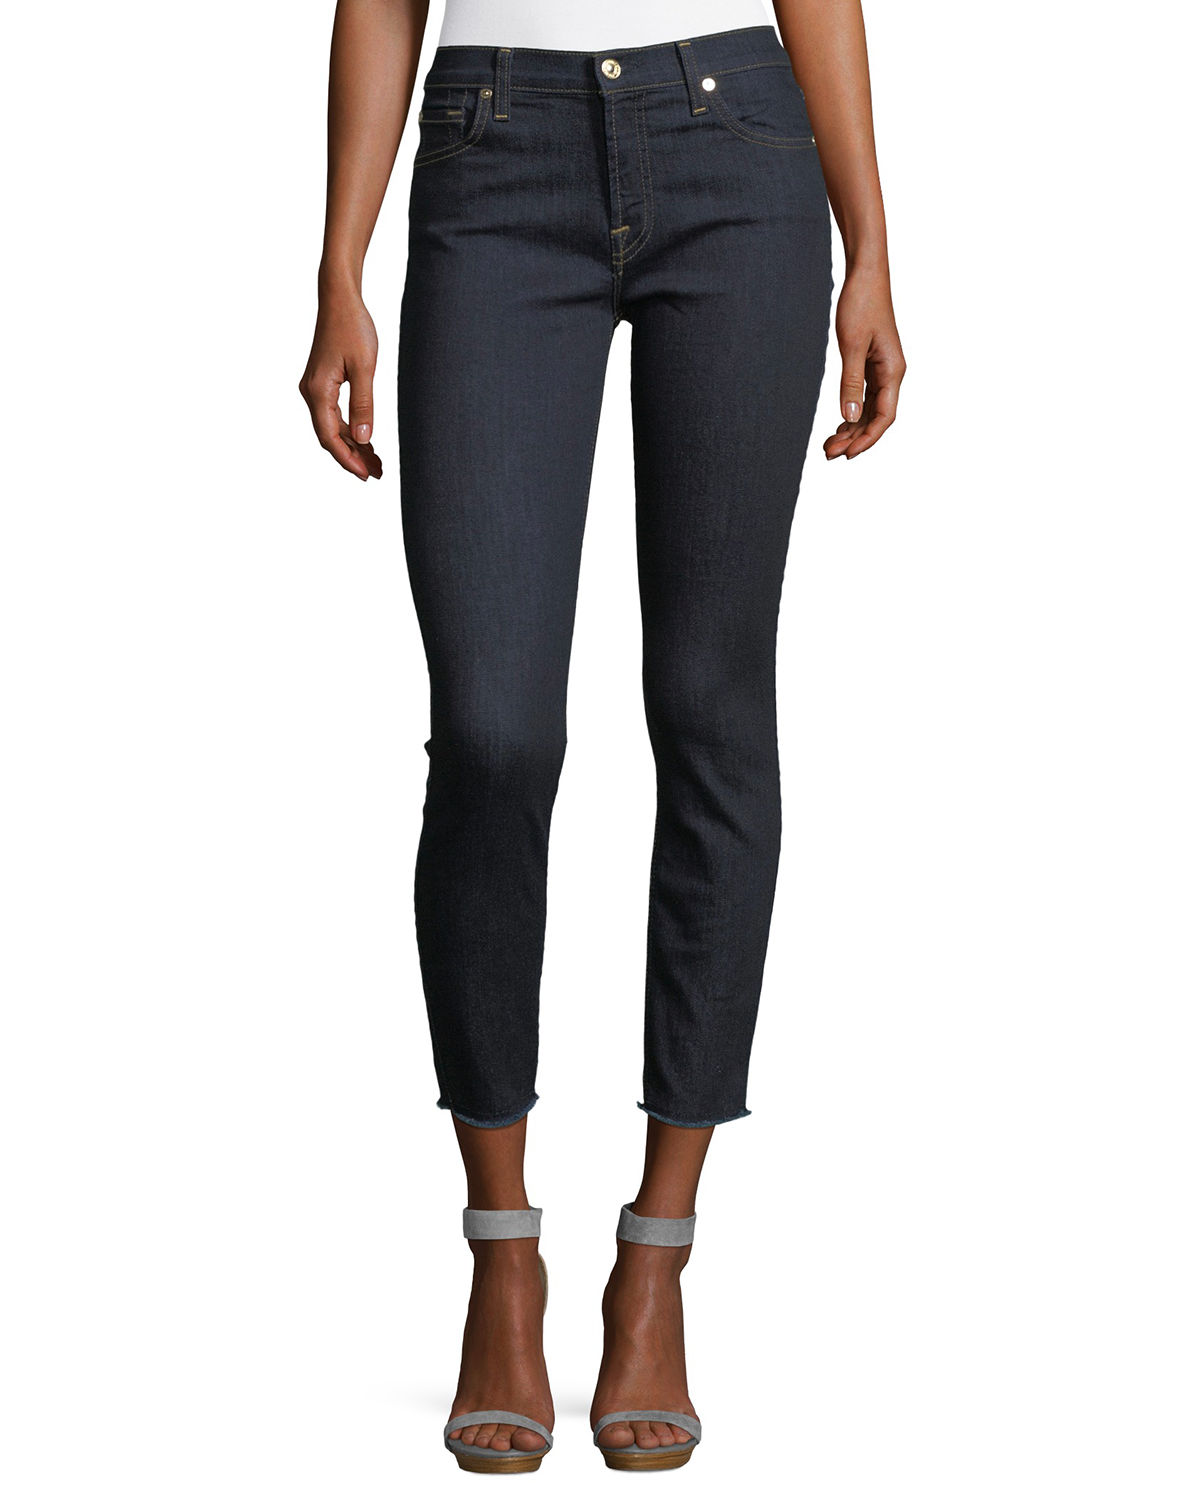 Gwenevere Raw-Edge Ankle Jeans